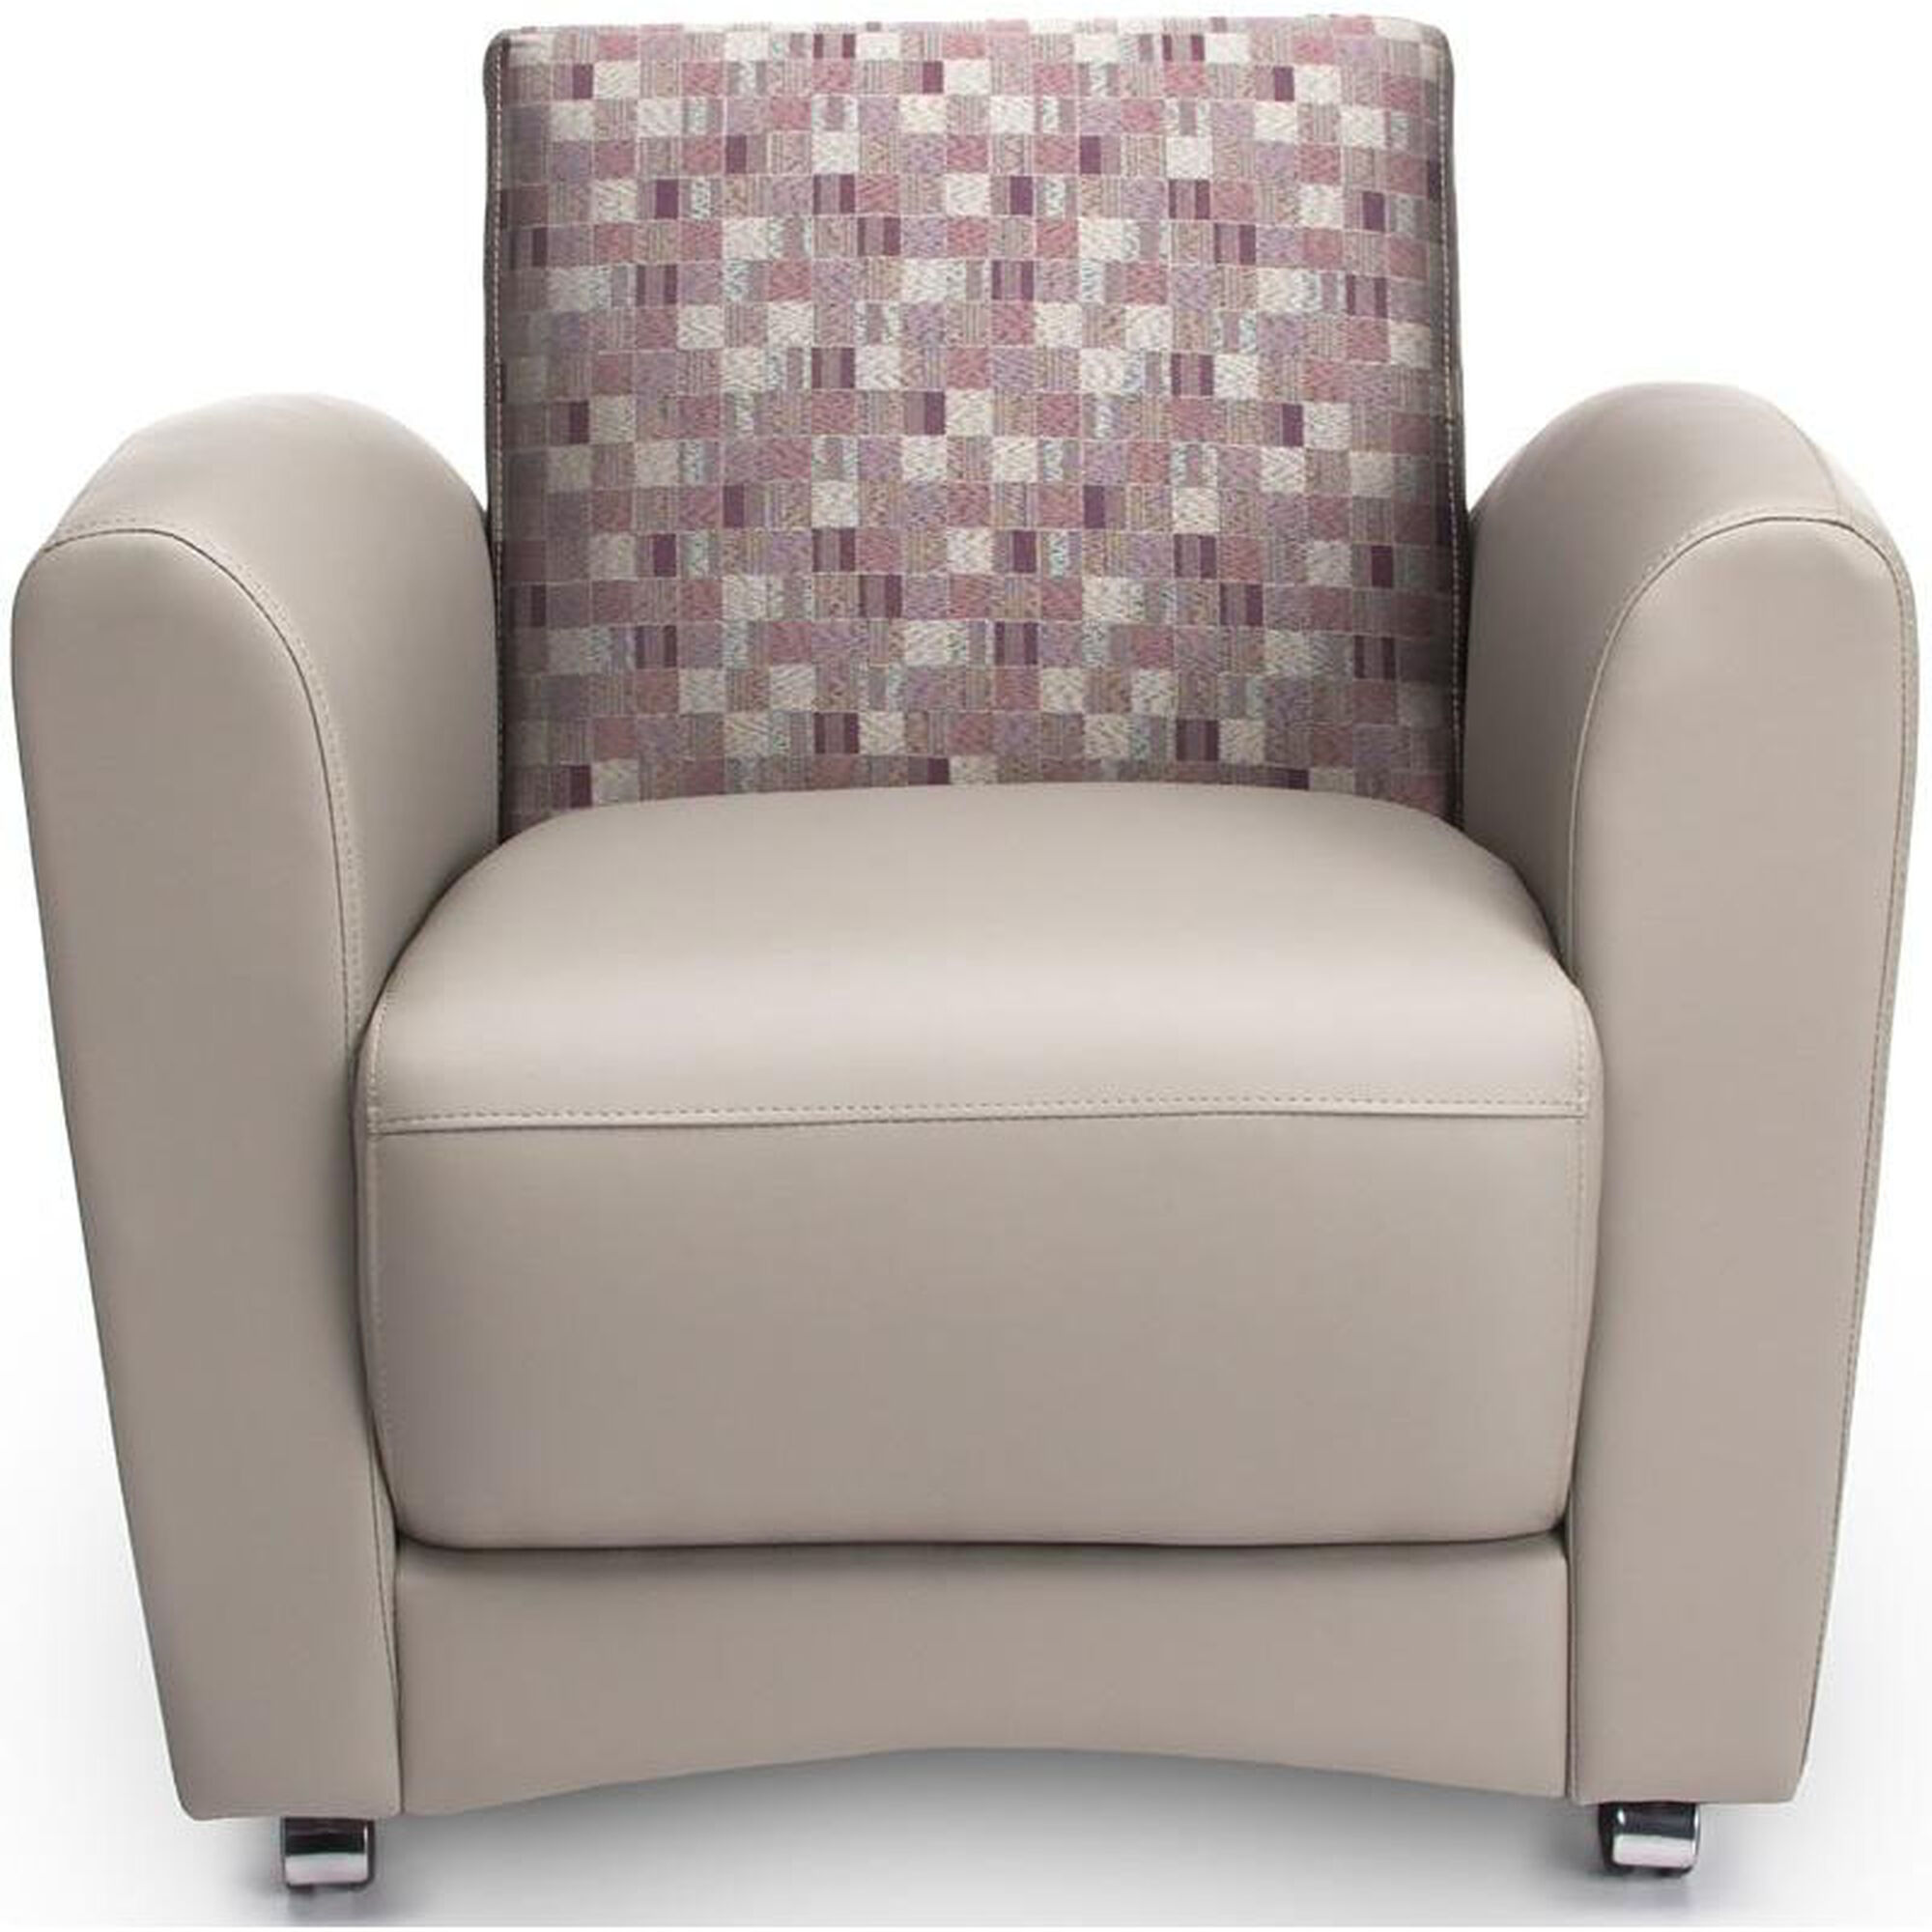 Brilliant Interplay Chair Plum And Taupe Ncnpc Chair Design For Home Ncnpcorg